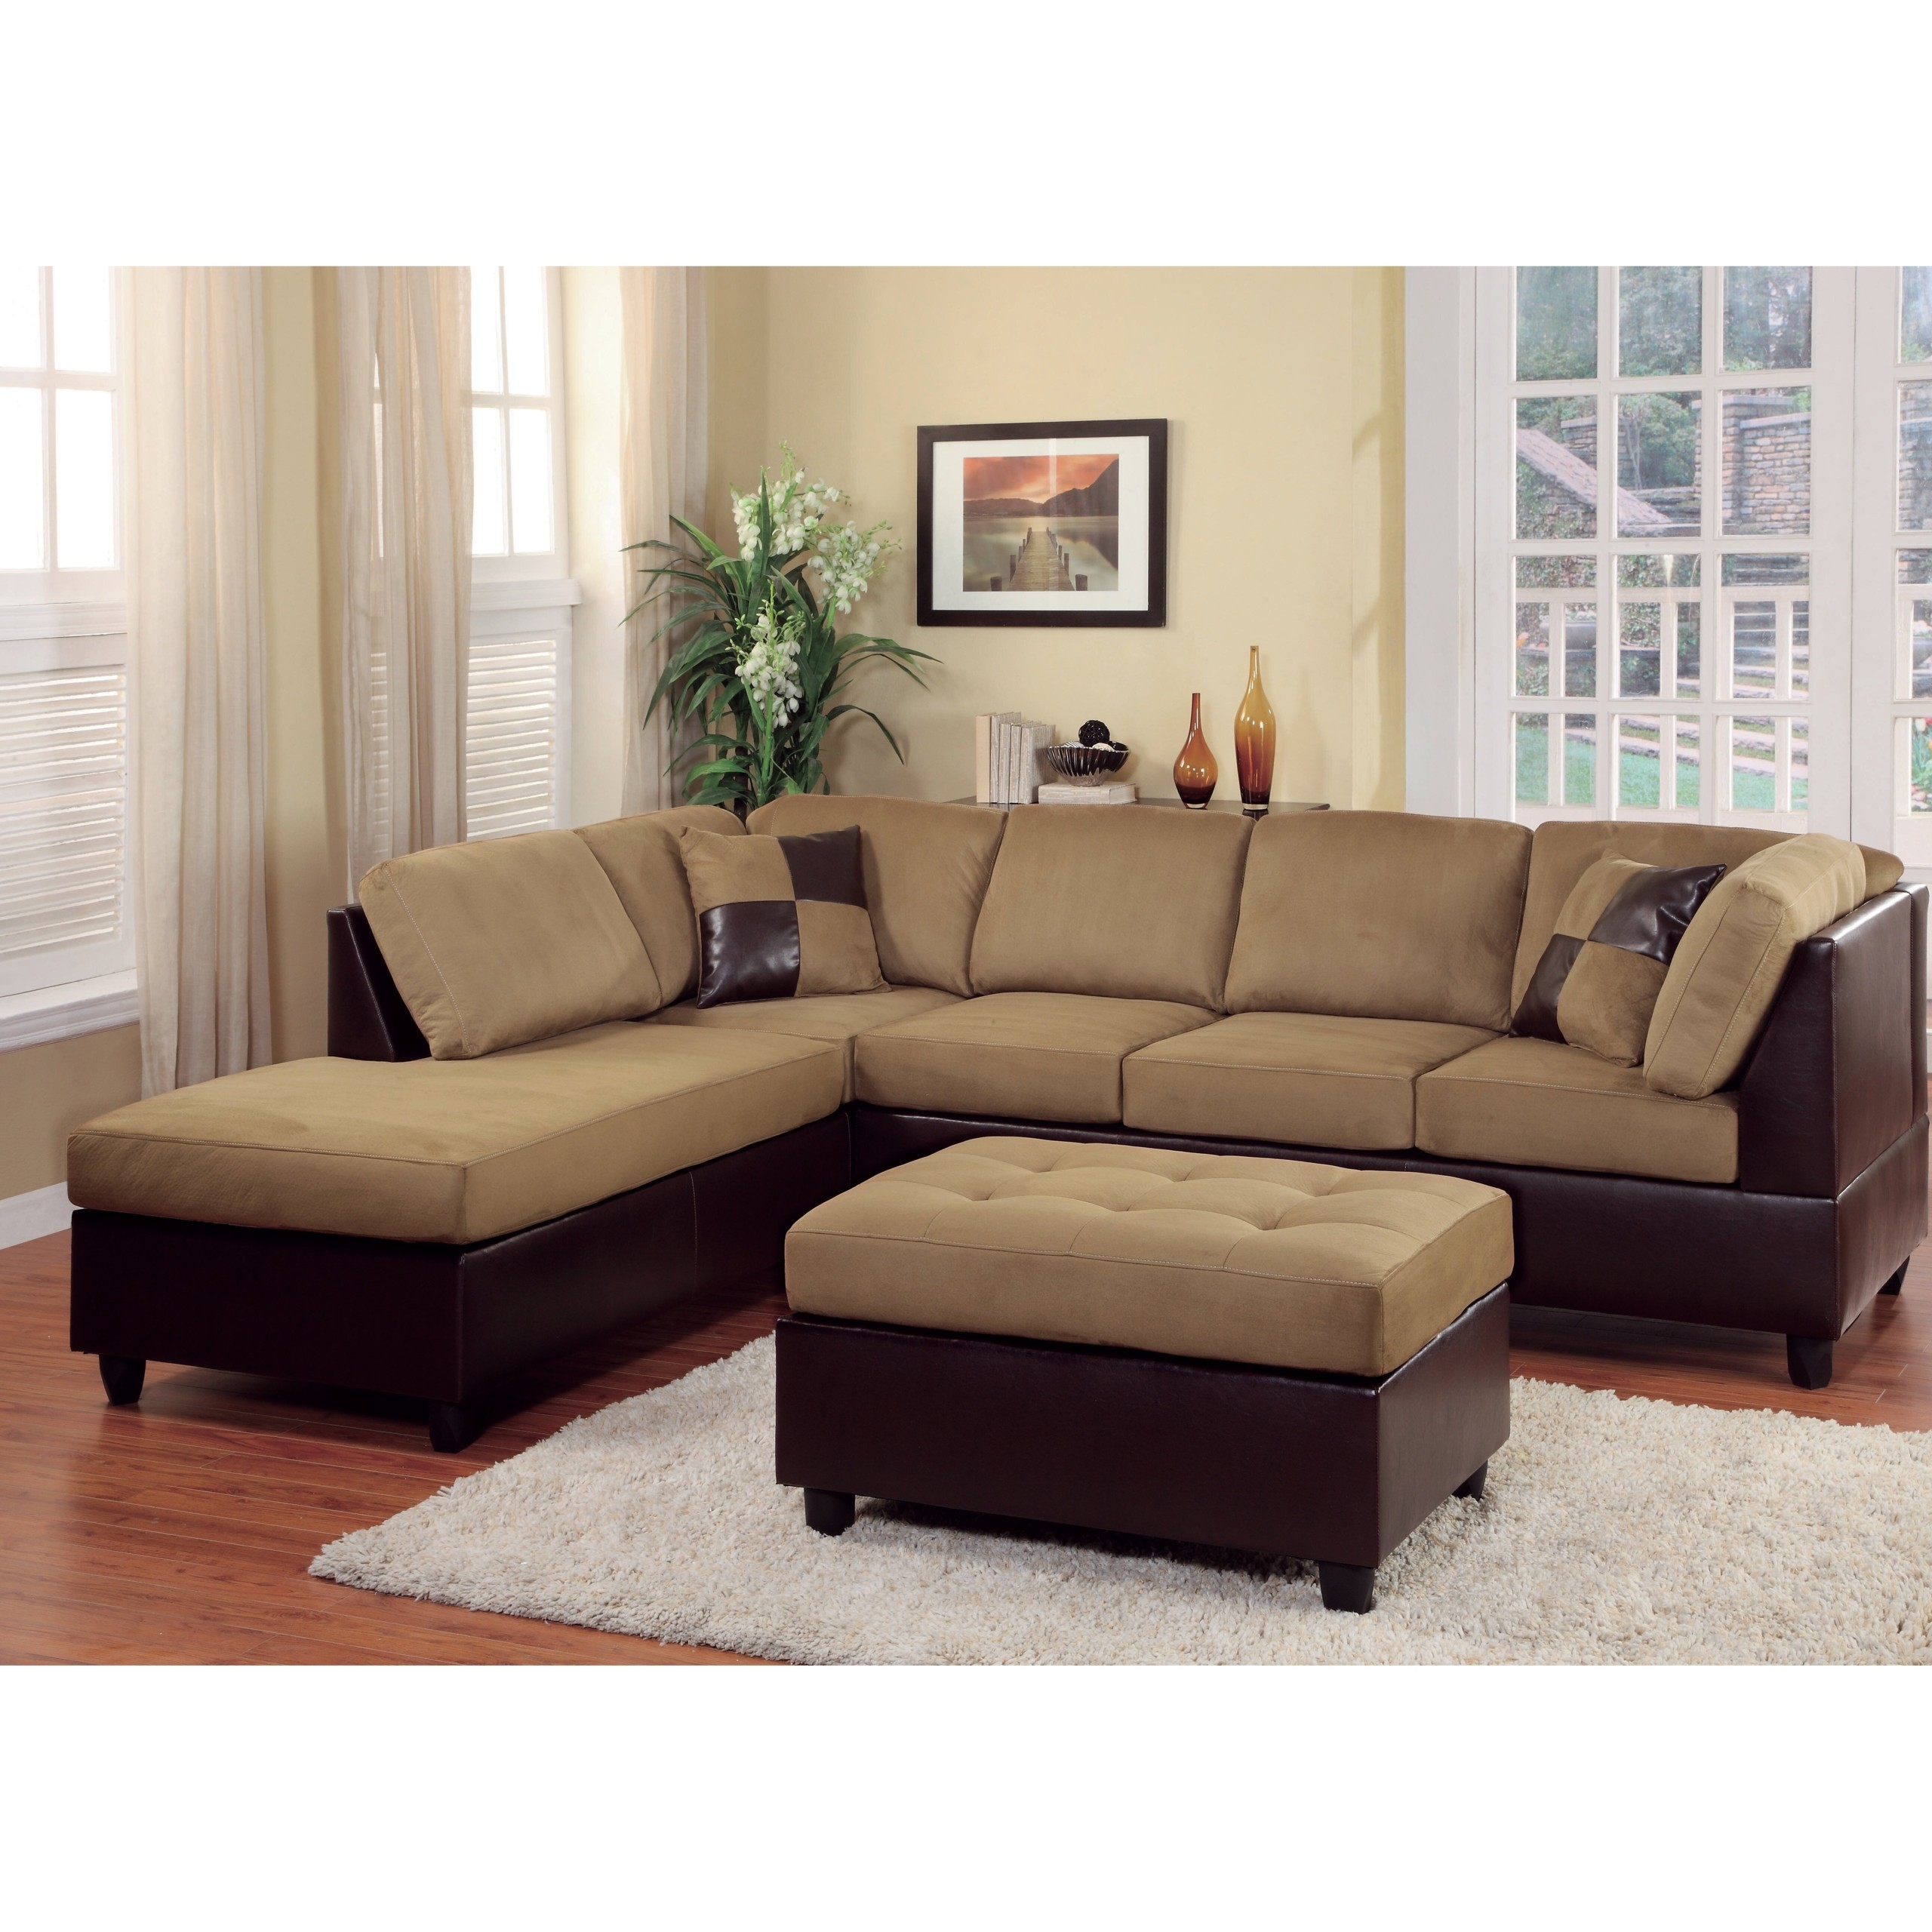 leather or fabric sofa for family room design with wooden handle and sectional sofas ideas on foter in